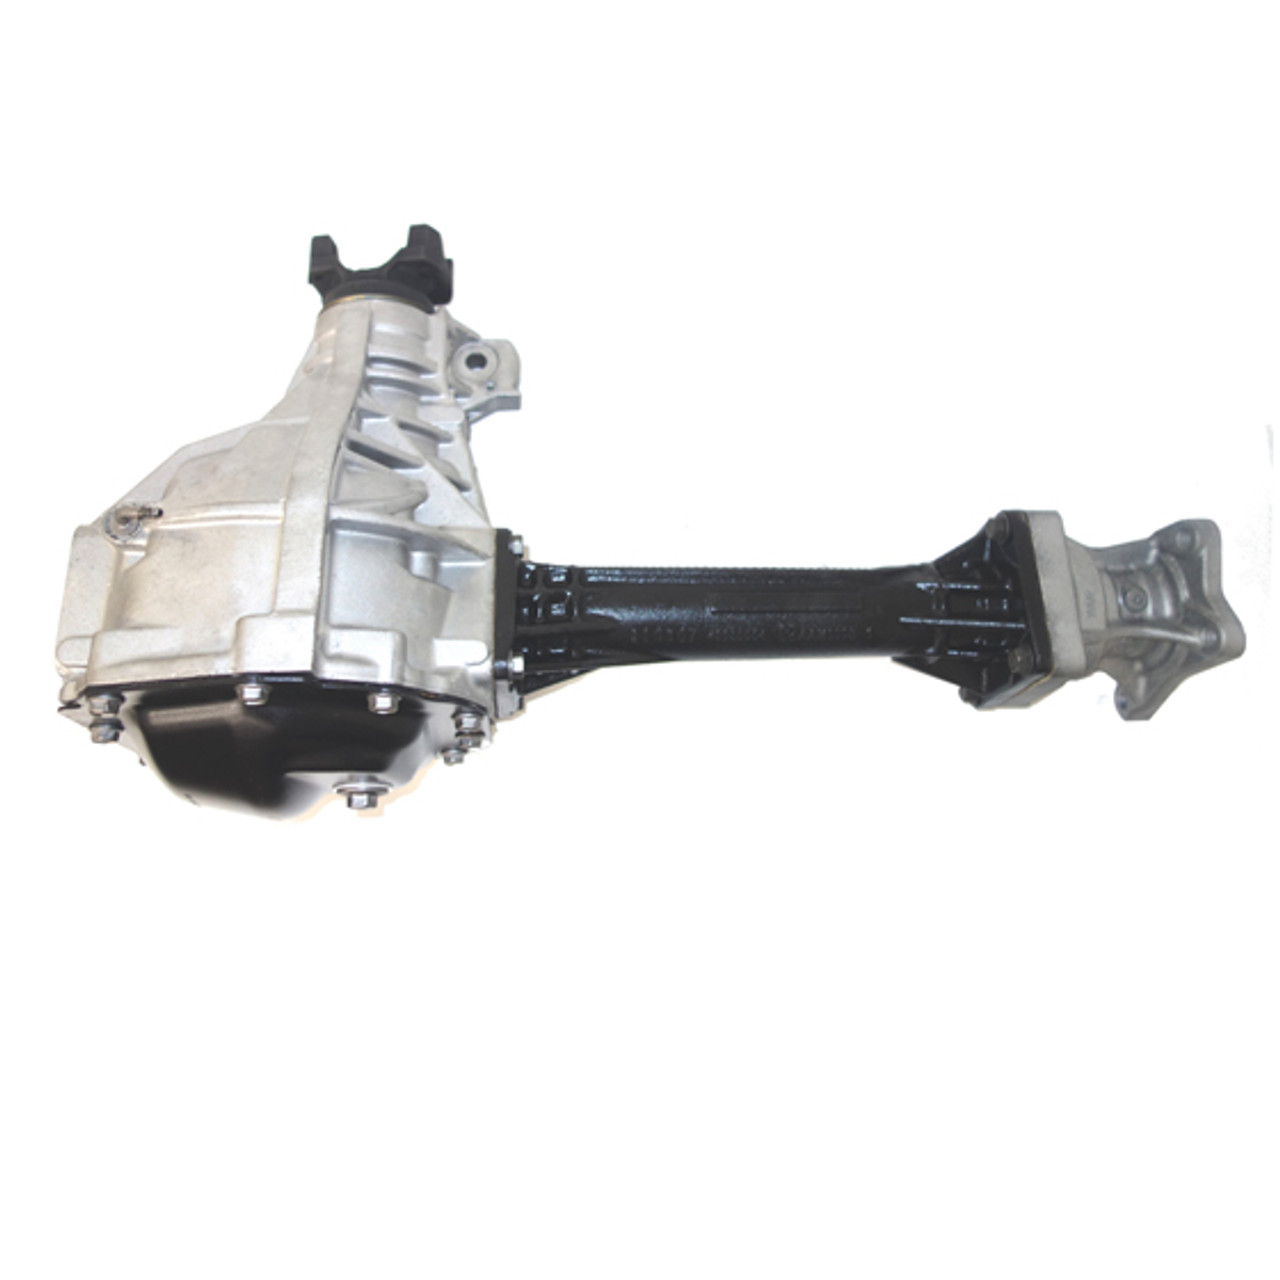 Reman Complete Axle embly for GM 7.6 IFS 06-10 Hummer H3 4.56 Ratio on